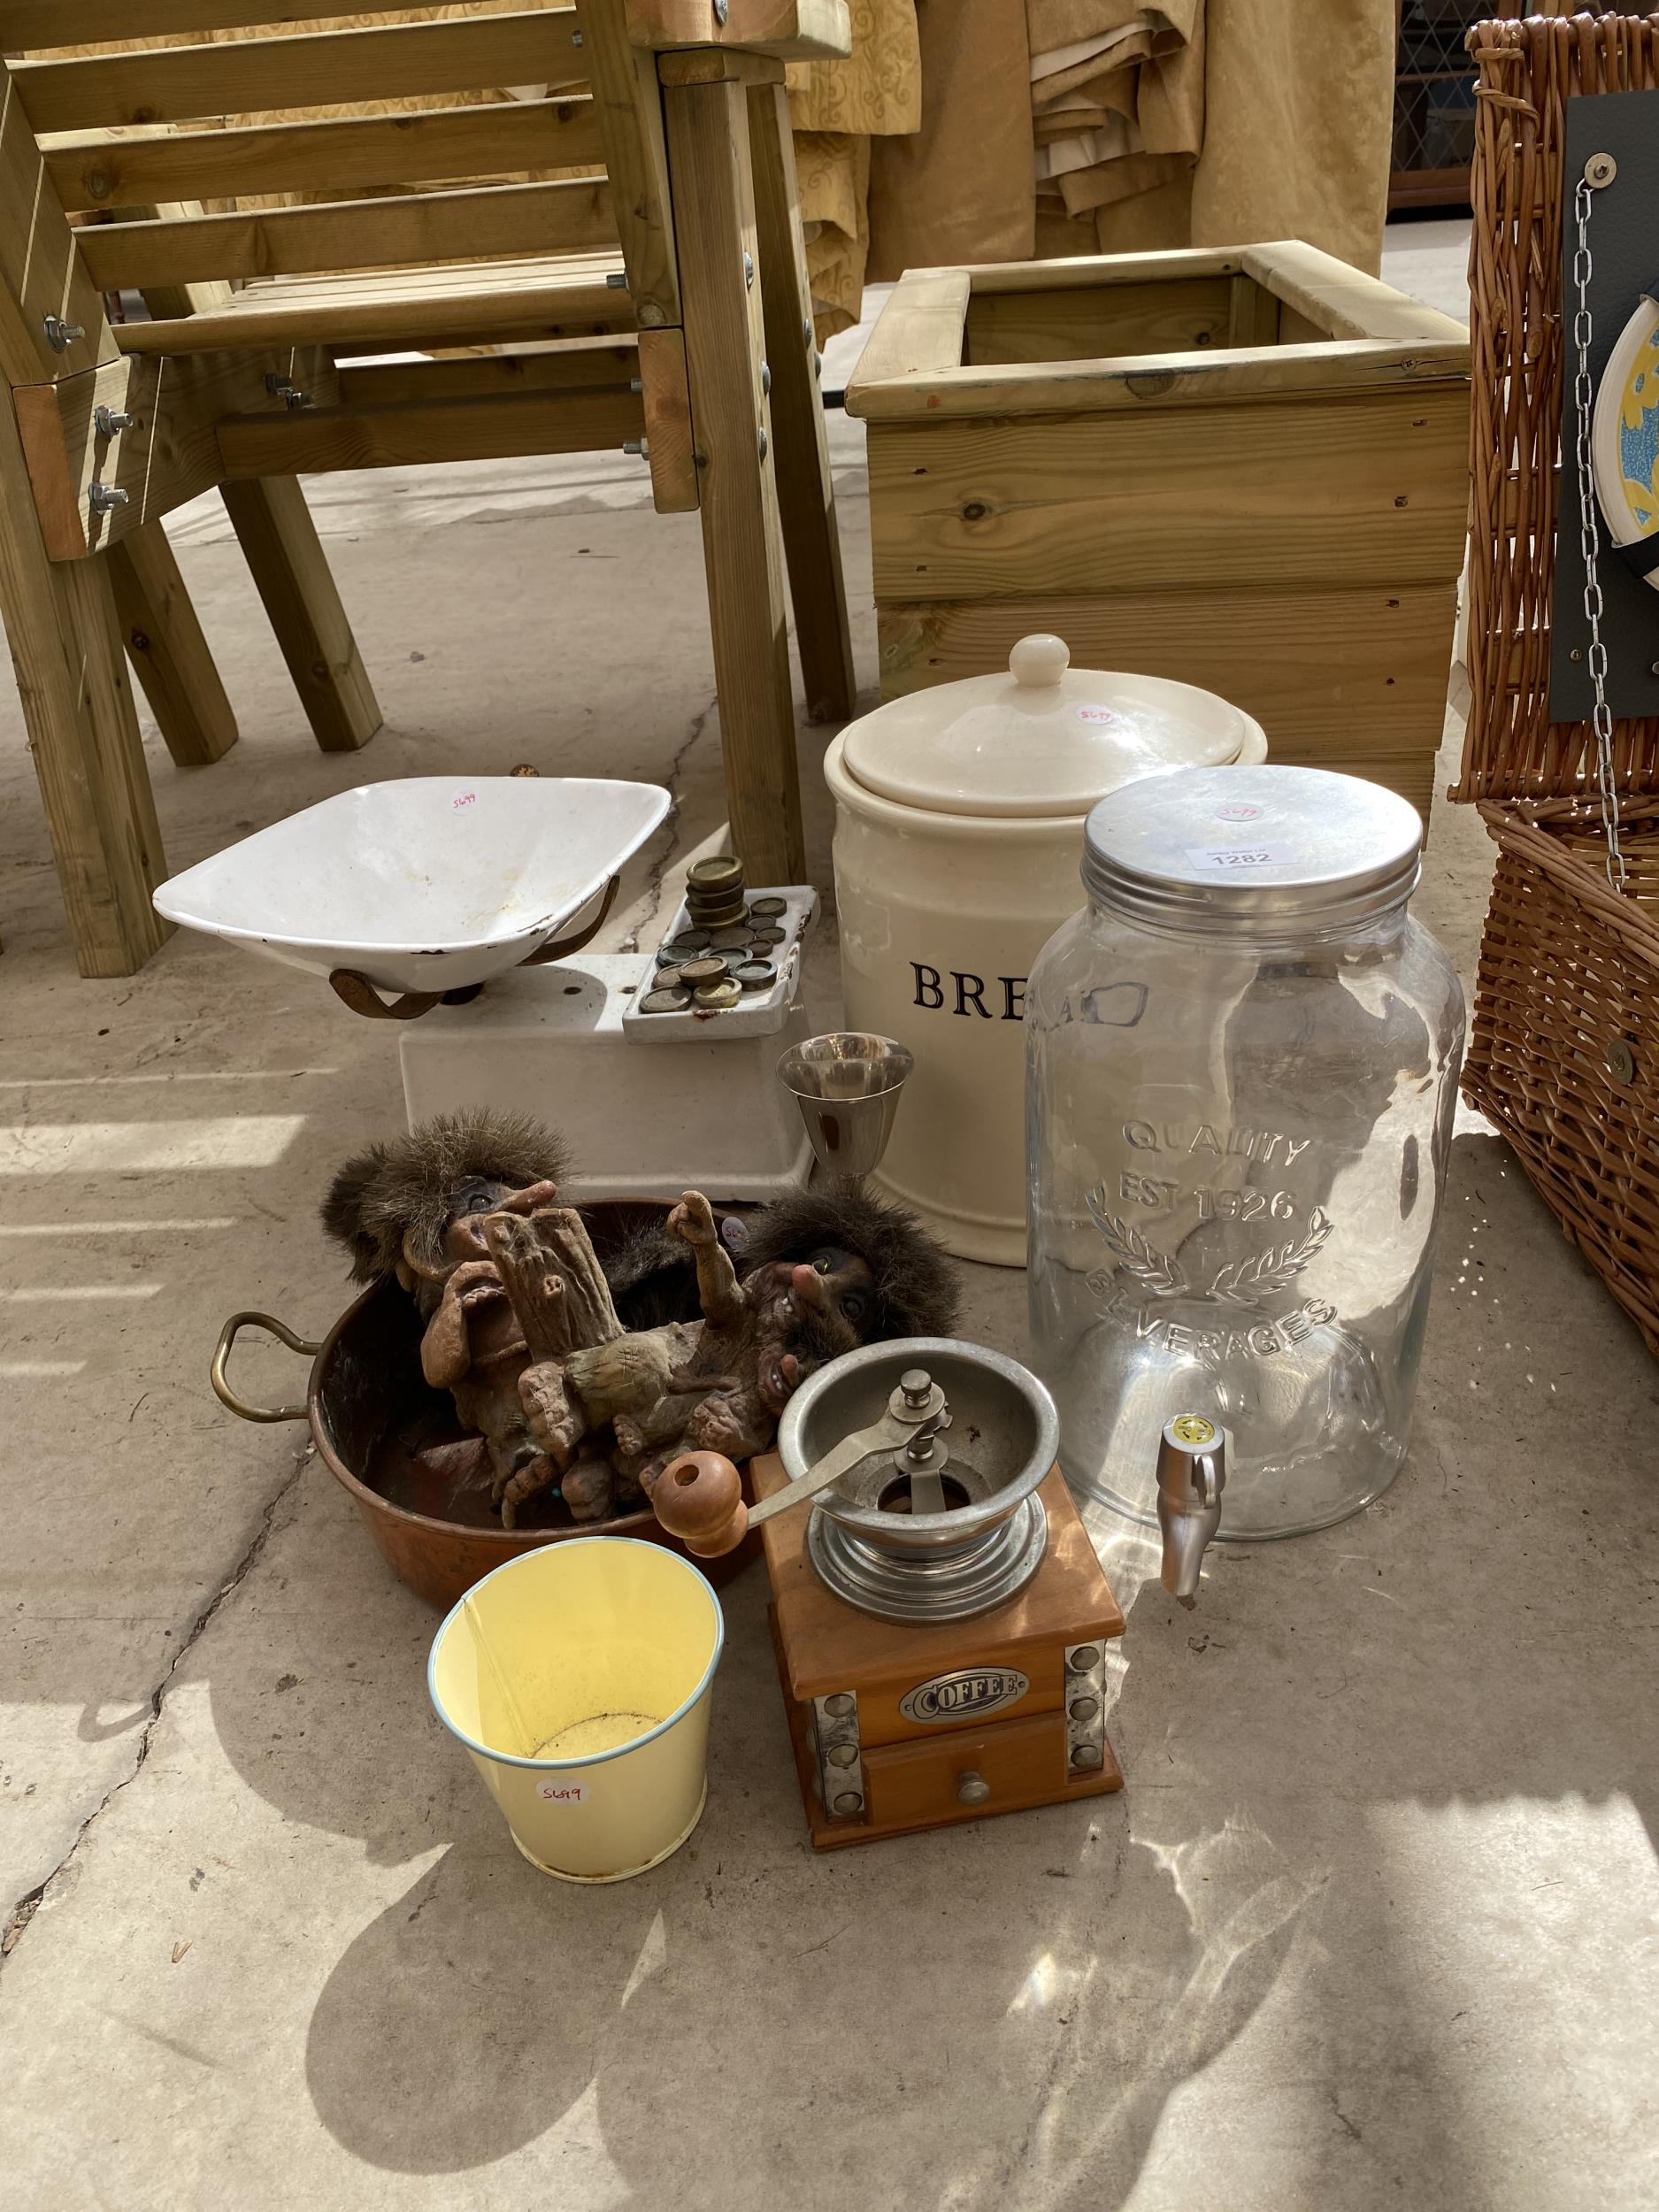 AN ASSORTMENT OF ITEMS TO INCLUDE SCALES AND WEIGHTS, A COPPER PAN AND A BREAD BIN ETC - Image 2 of 3